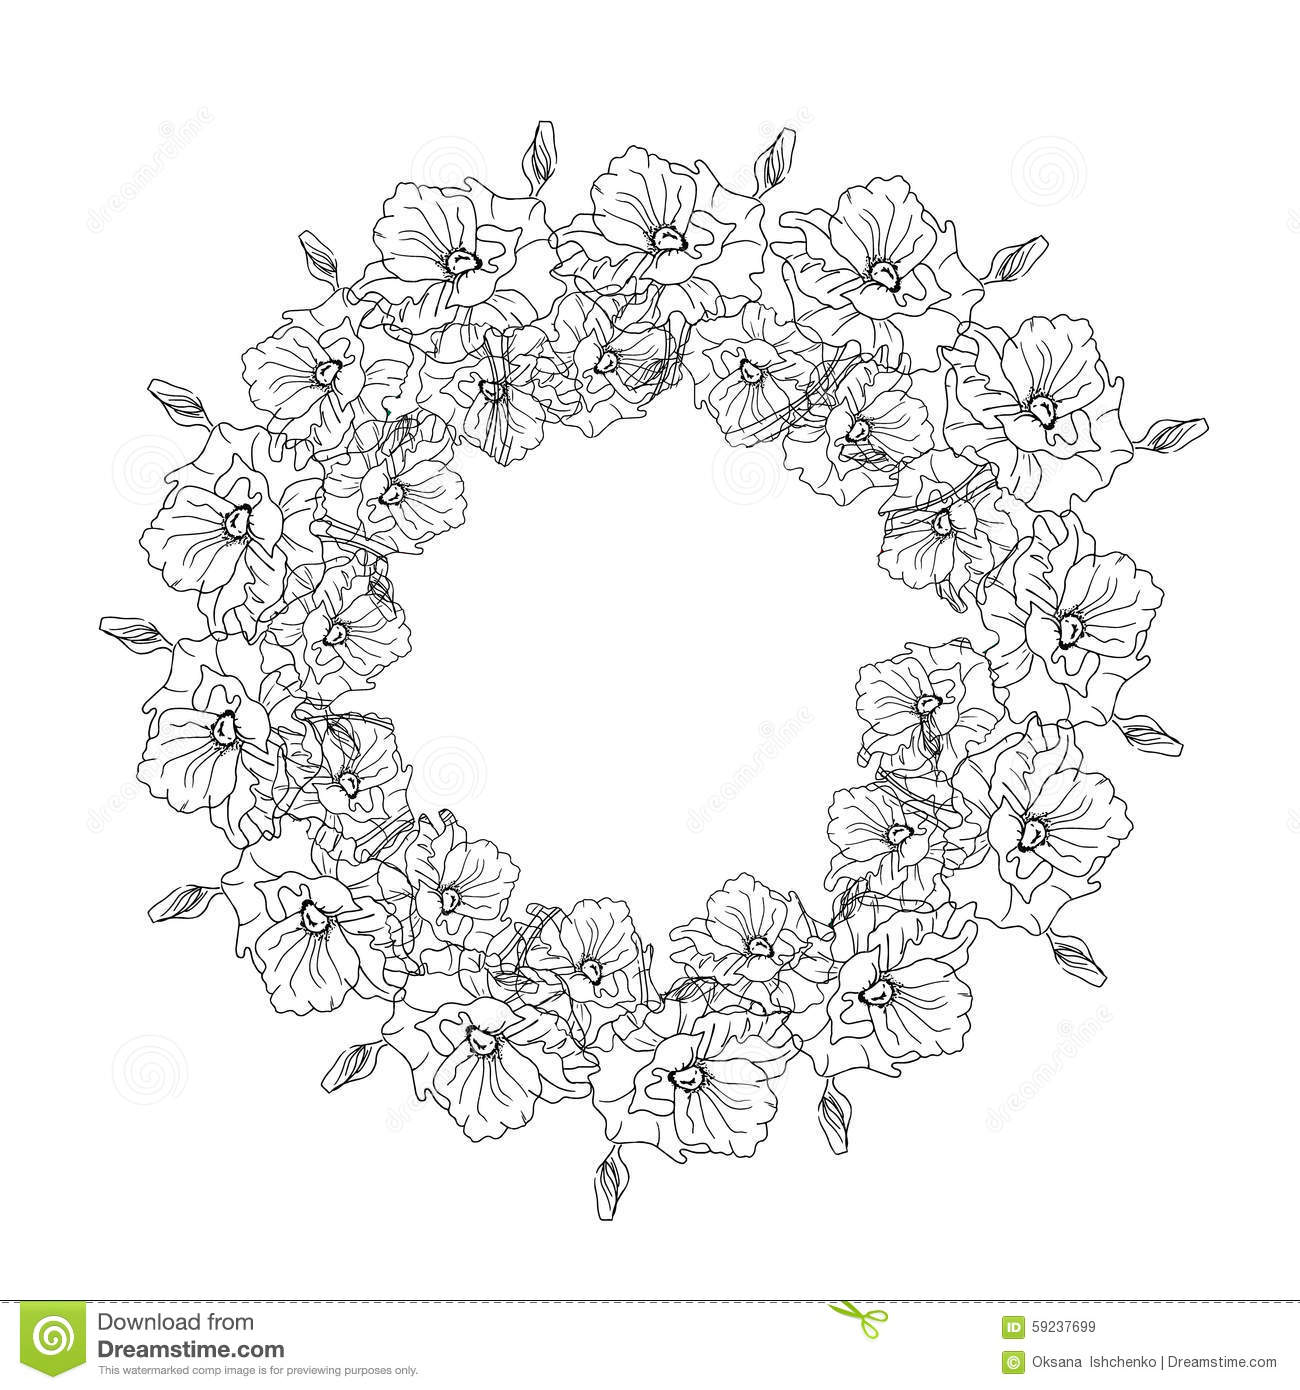 Black and white floral wreath stock vector image 65241515 - Black And White Floral Wreath Stock Vector Image 65241515 Black And White Floral Wreath Stock